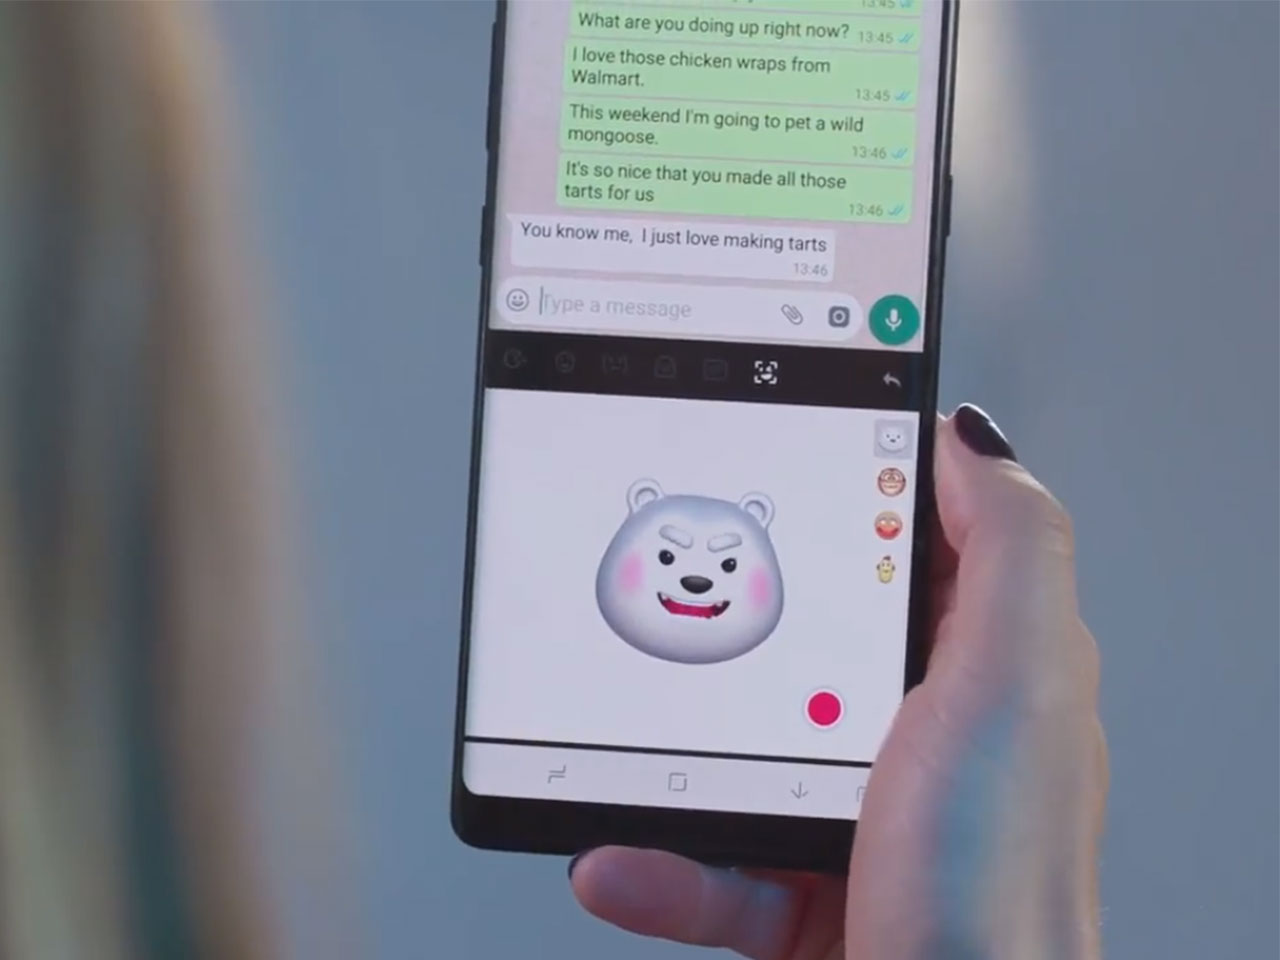 Get iPhone's Animoji in Any Android Device [Almost Same]